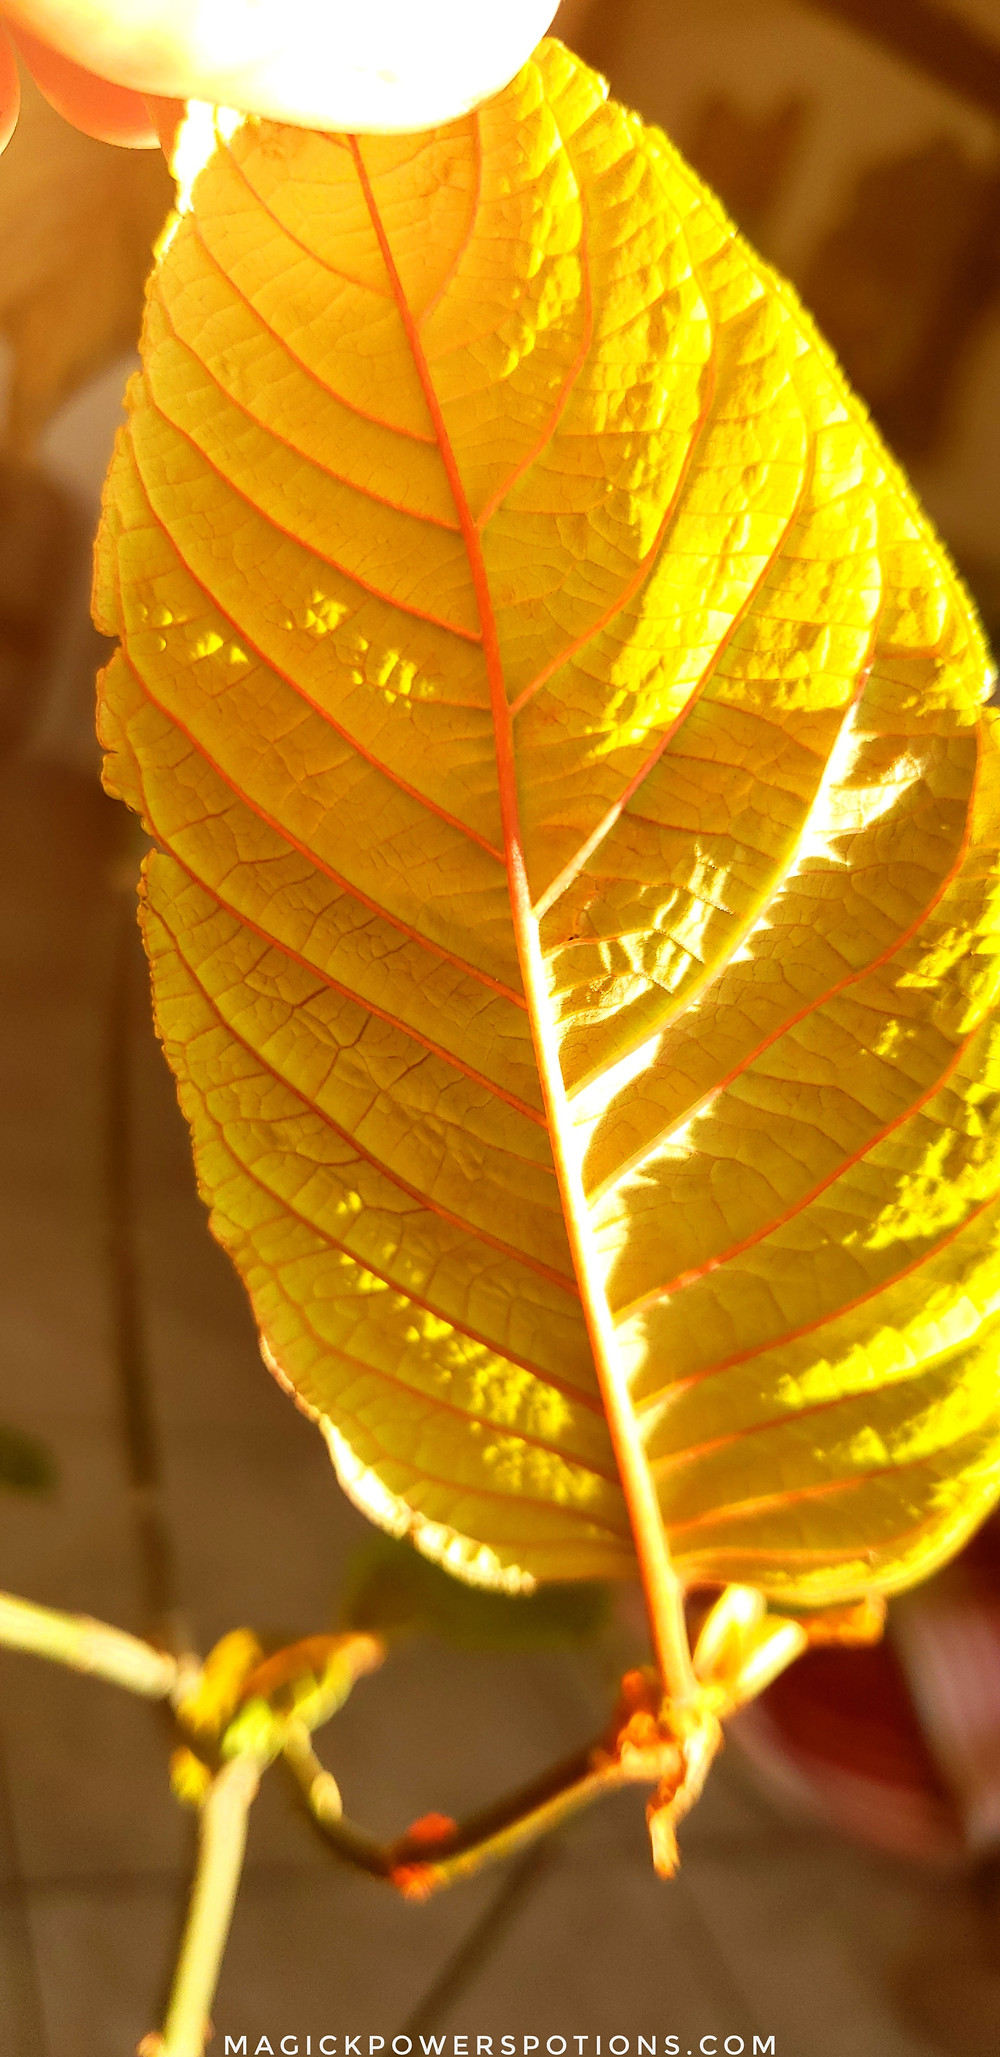 The underside of this newly formed kratom leaf is Big Bird yellow with florescent orange veins. Highlighted by the golden glow of the setting sun, this specimen is crowned in the light of divinity.